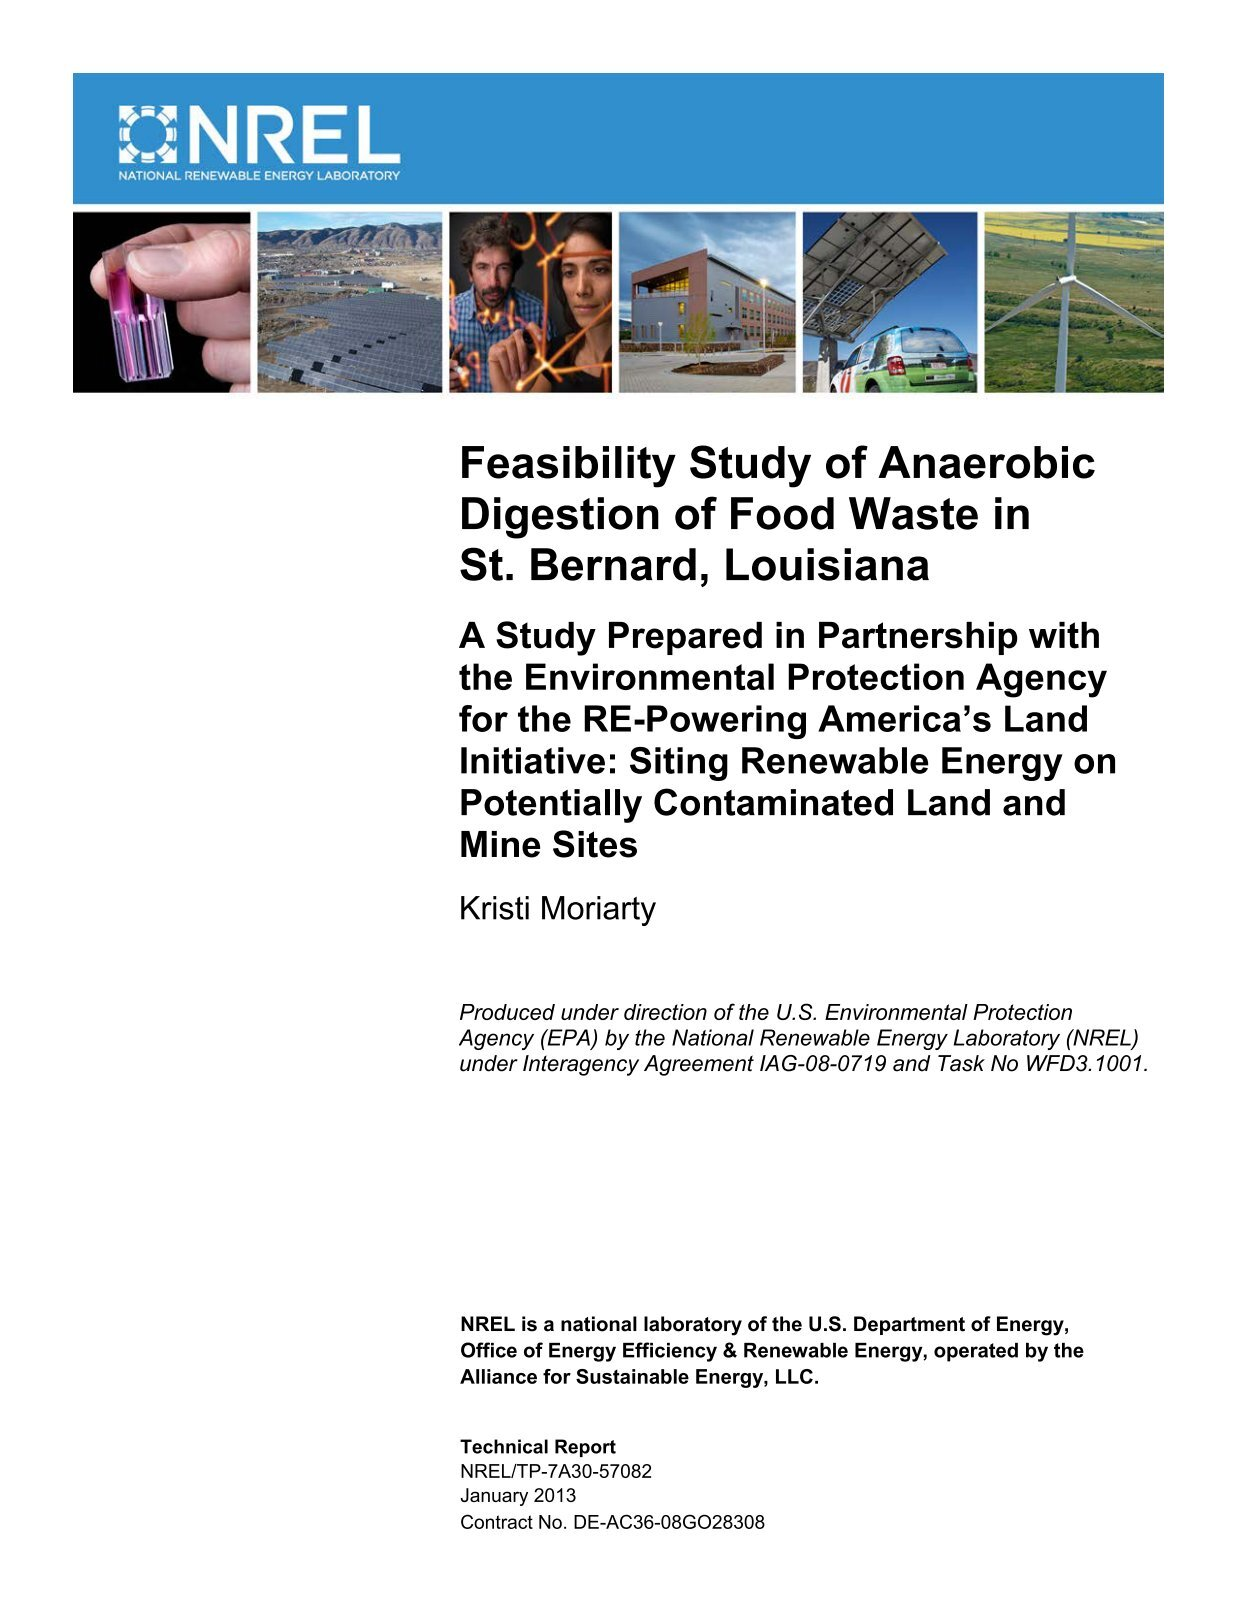 anaerobic digestion on biodegradable waste for Addressing food waste through anaerobic digestion  despite the promise of anaerobic digestion, the success of waste-to-energy projects in the us has been mixed.